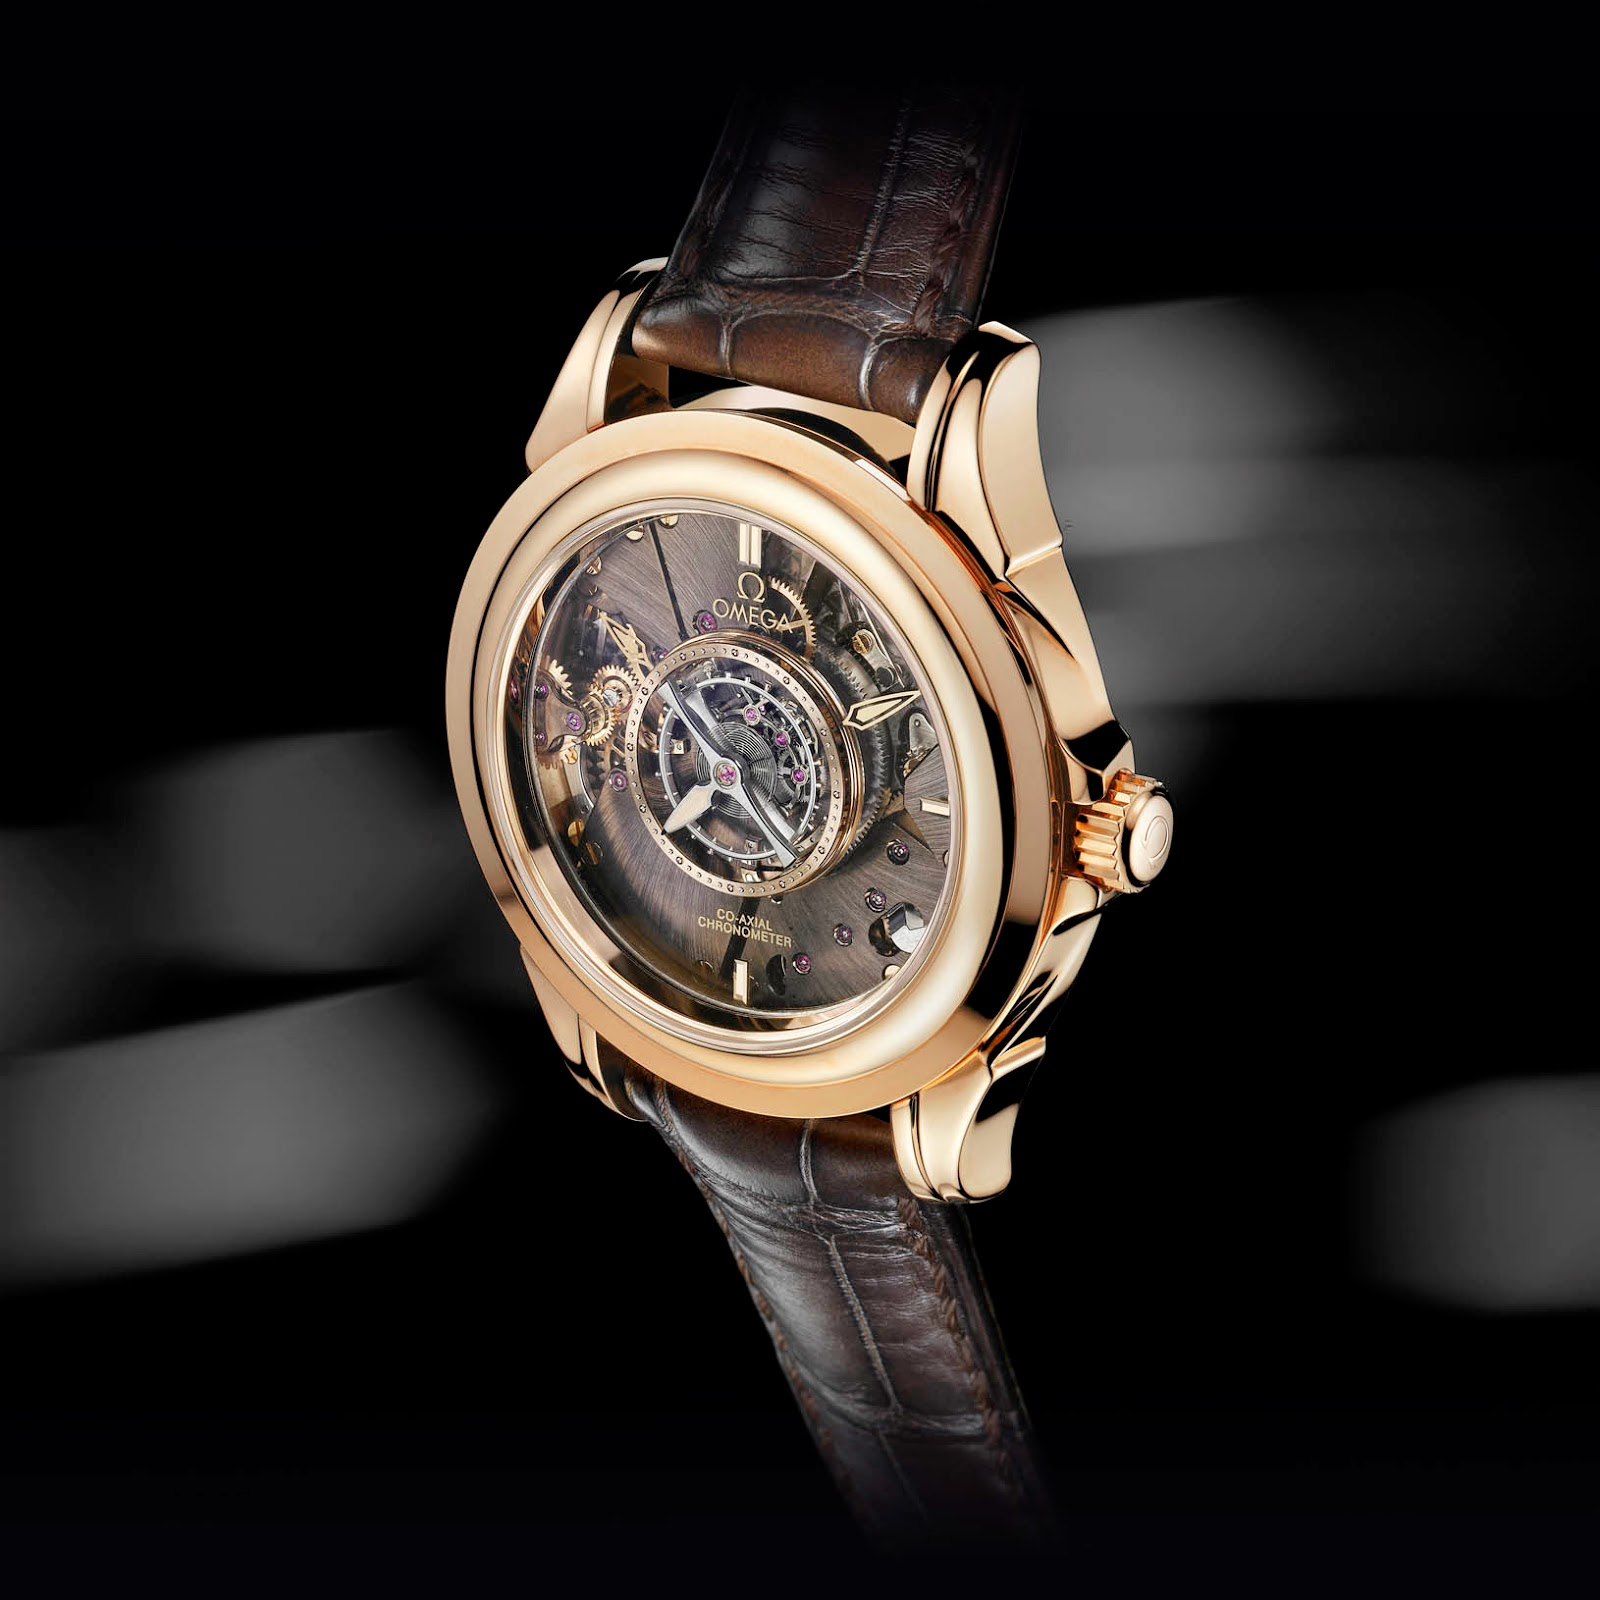 Omega De Ville Central Tourbillon Co-Axial Chronometer watch replica